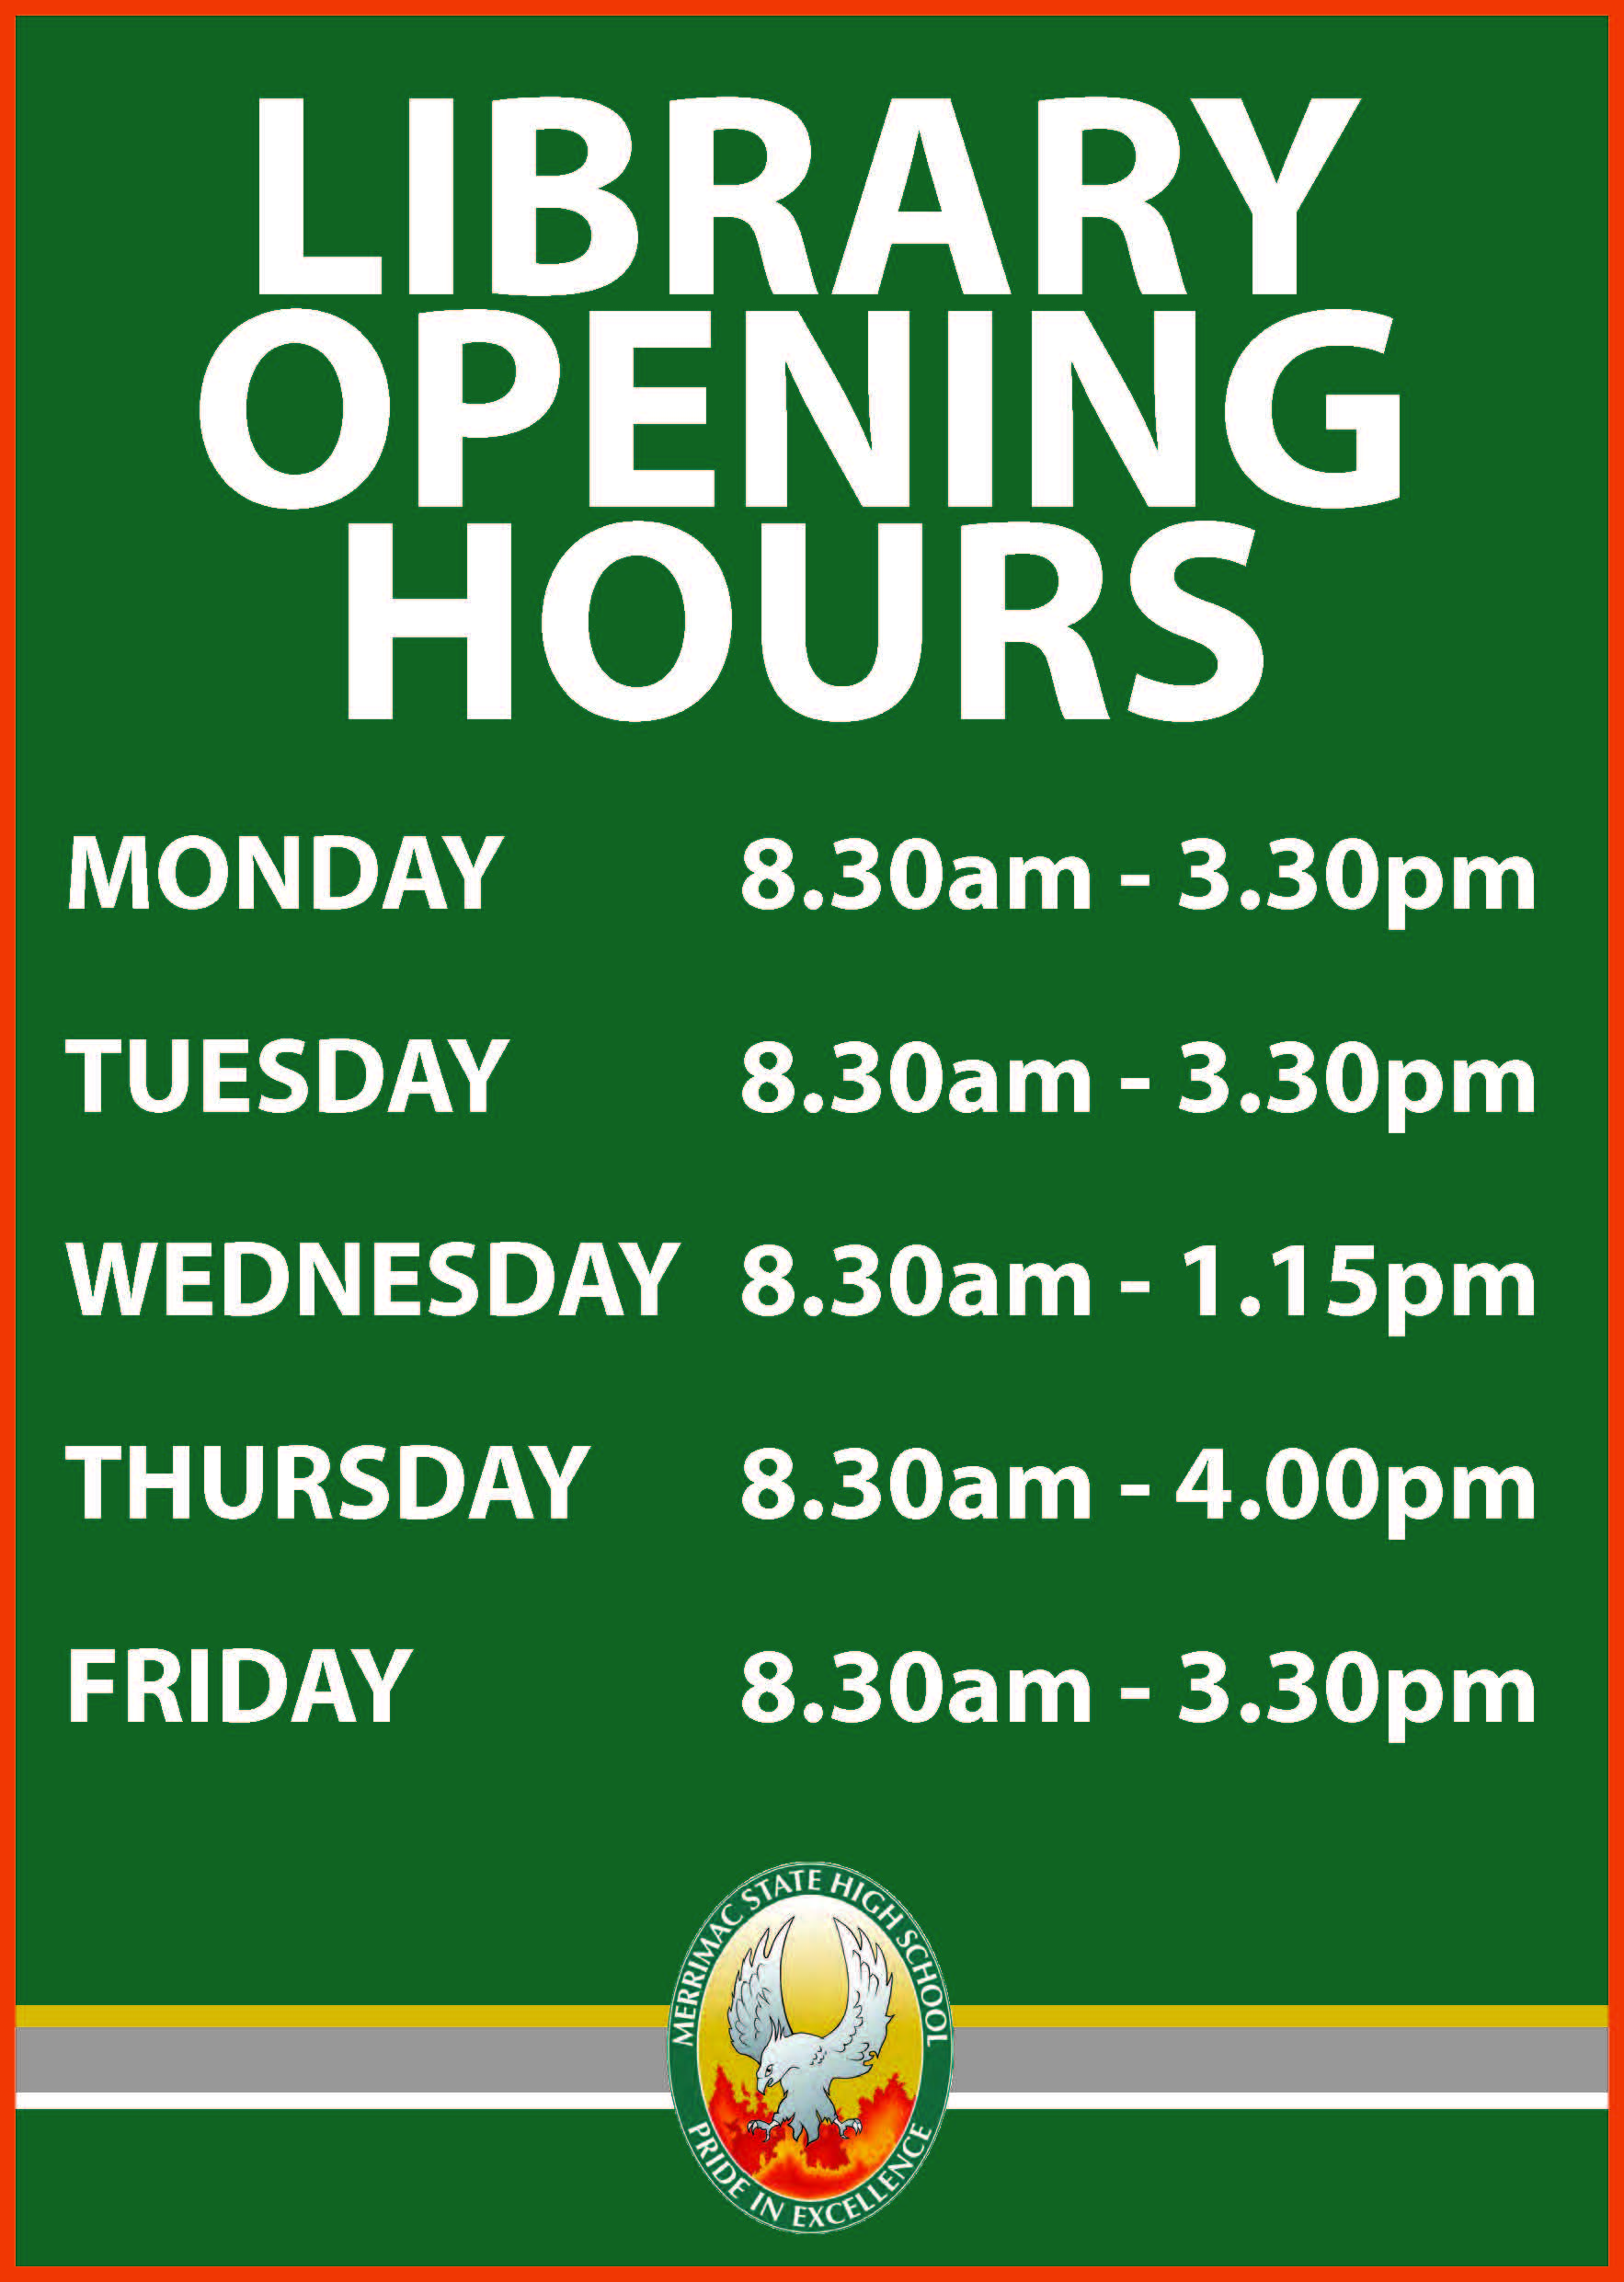 Library opening hours poster